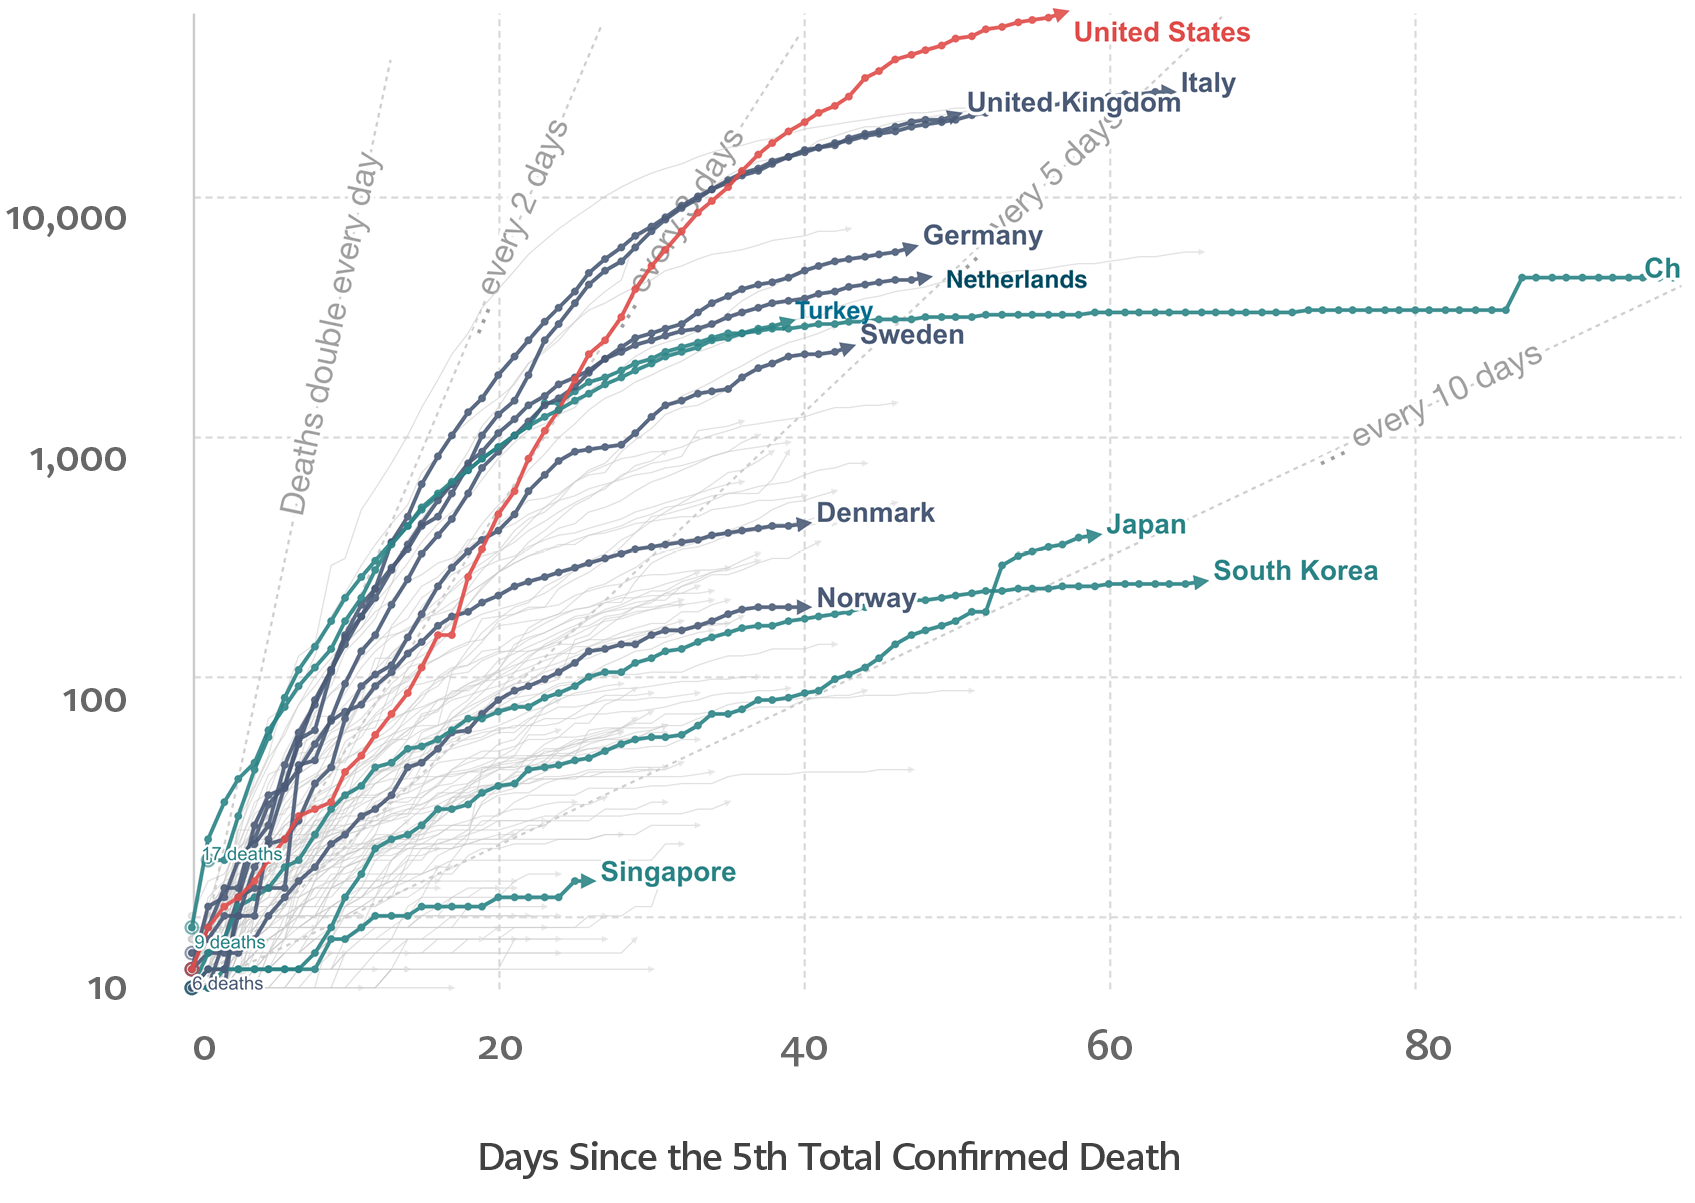 <strong>Figure 3.</strong> Total confirmed COVID-19 deaths since the 5th total confirmed death as of April 29th, 2020 (Source: Our World in Data - https://ourworldindata.org/)